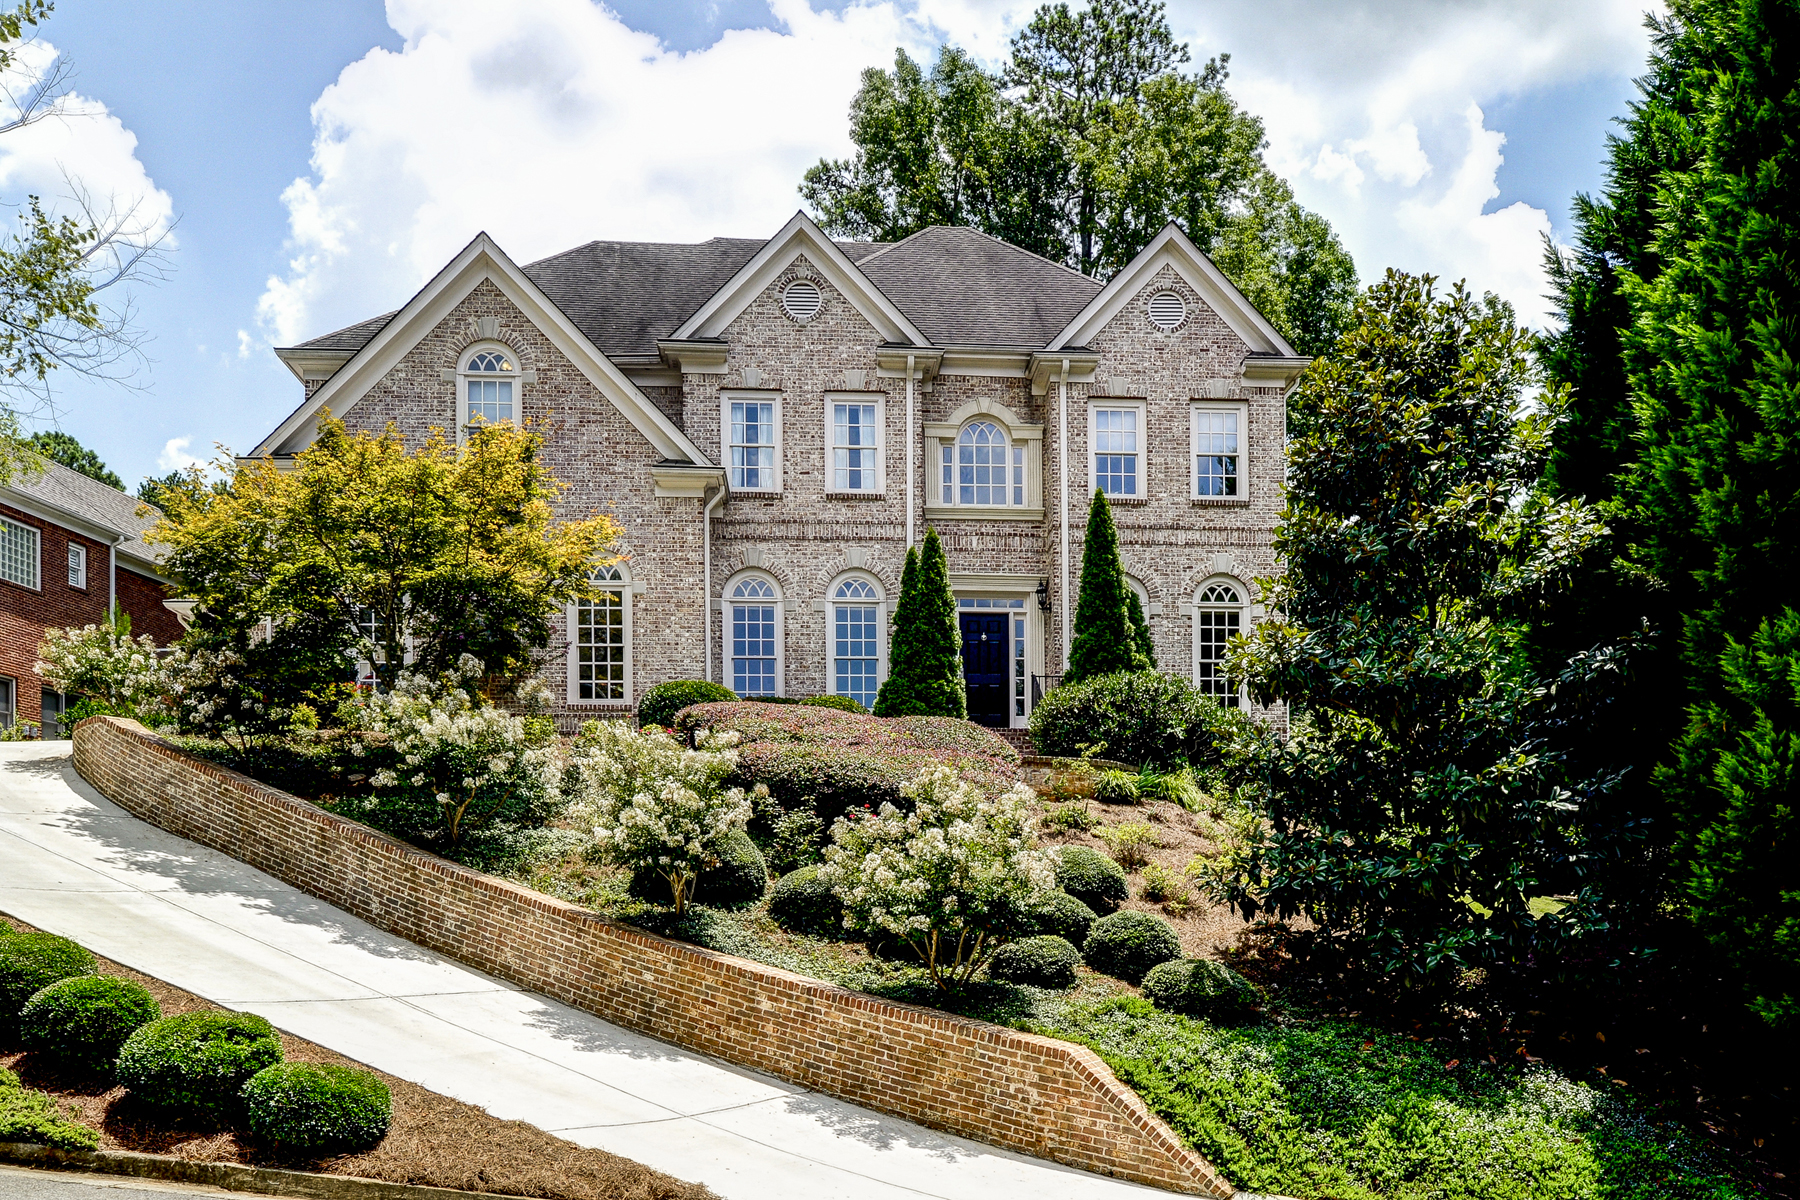 独户住宅 为 销售 在 Amazing Brookhaven Home On A Cul-de-sac 1023 Mill Overlook NE Atlanta, 乔治亚州 30319 美国